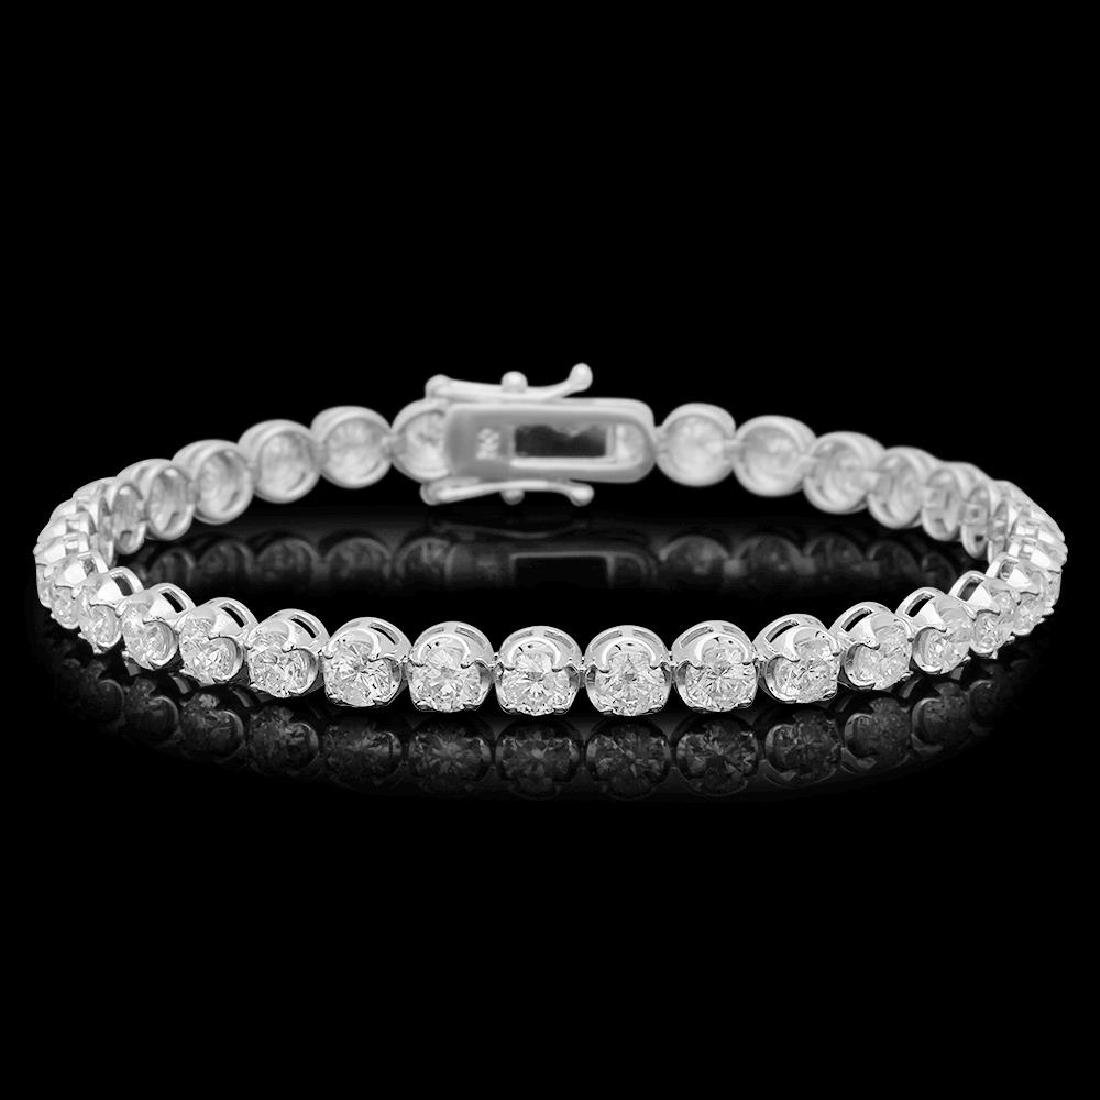 18K Gold 8.67ct Diamond Bracelet